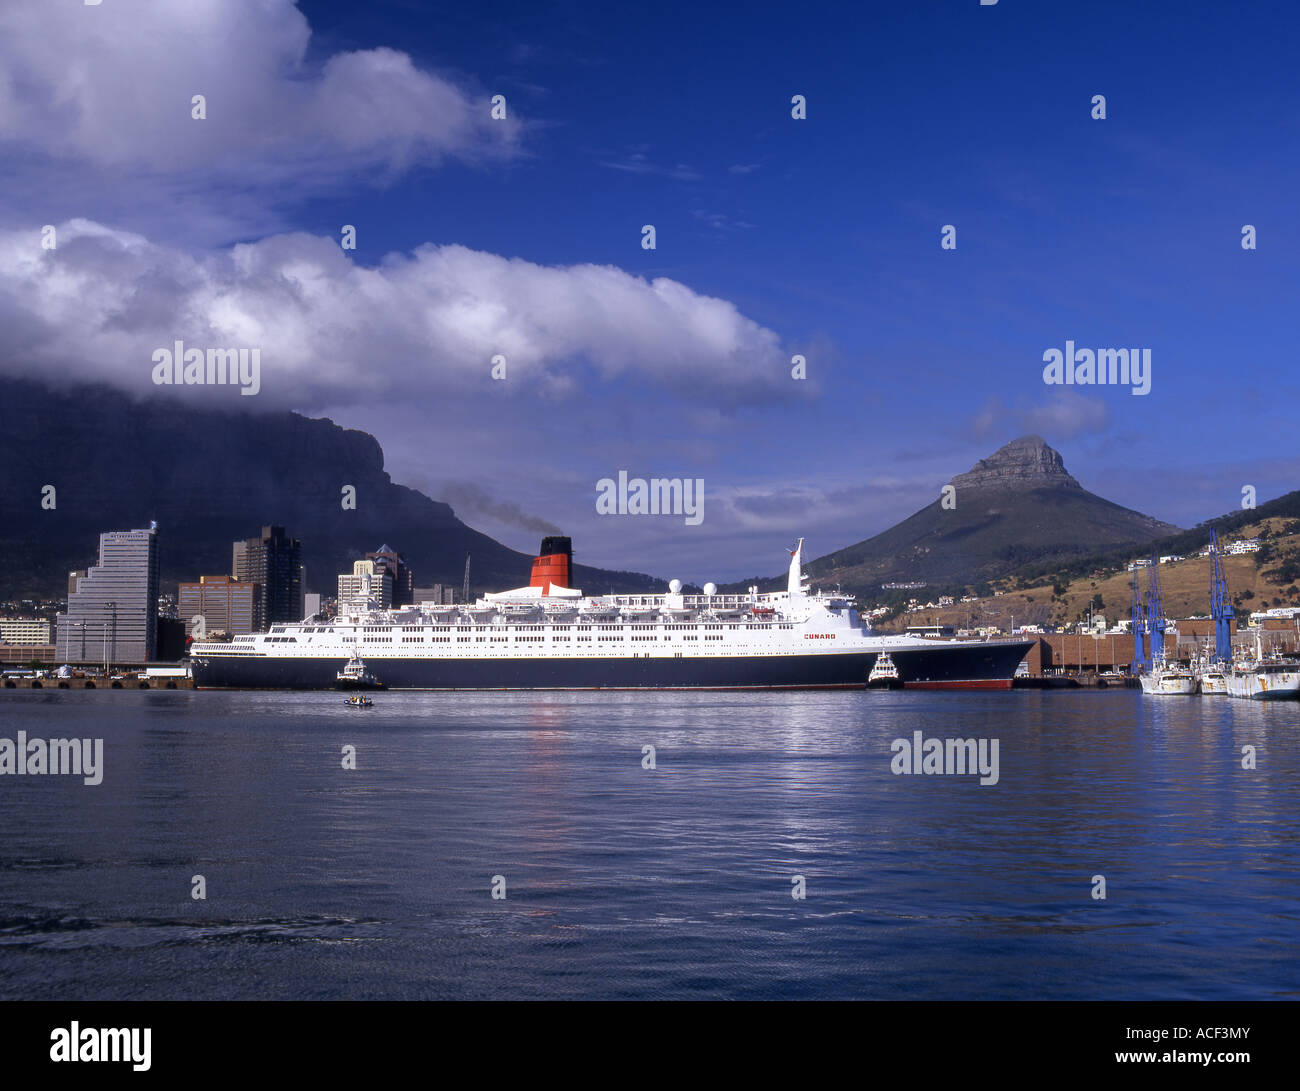 The Queen Elizabeth 2 (QE2) luxury ocean liner moored in Cape Town Harbour Cape Peninsula, Western Cape; South Africa - Stock Image